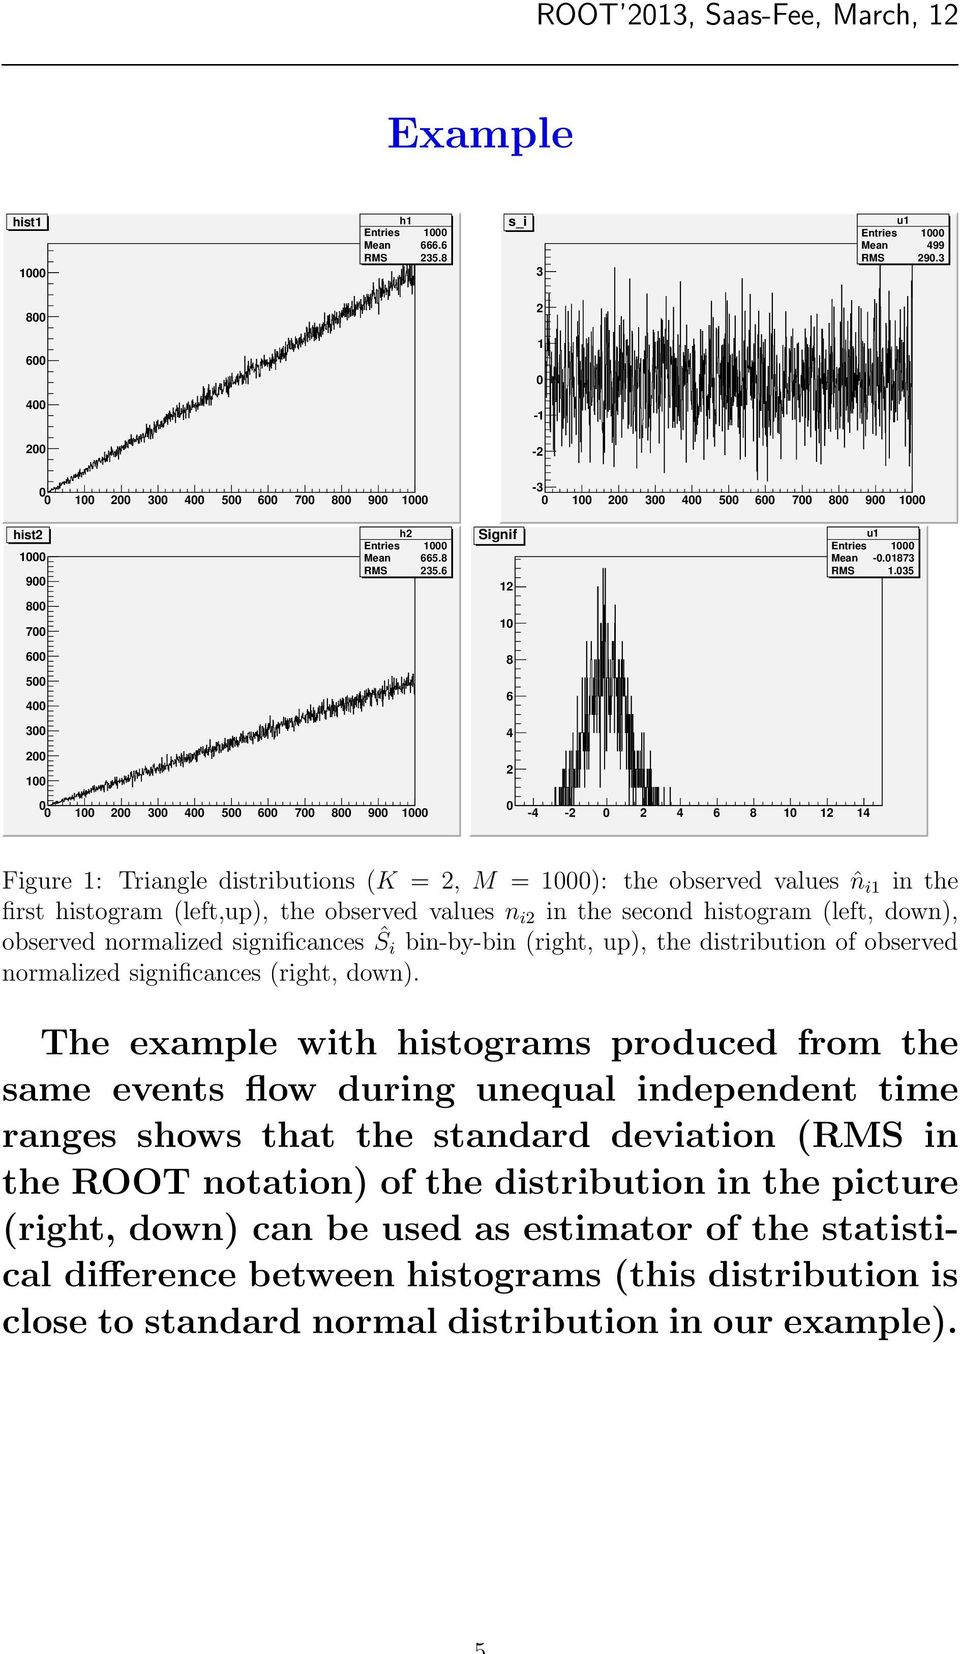 35 6 8 5 4 6 3 3 4 5 6 7 8 9 4-4 - 4 6 8 4 Figure : Triangle distributions (K =, M = ): the observed values ˆn i in the first histogram (left,up), the observed values n i in the second histogram